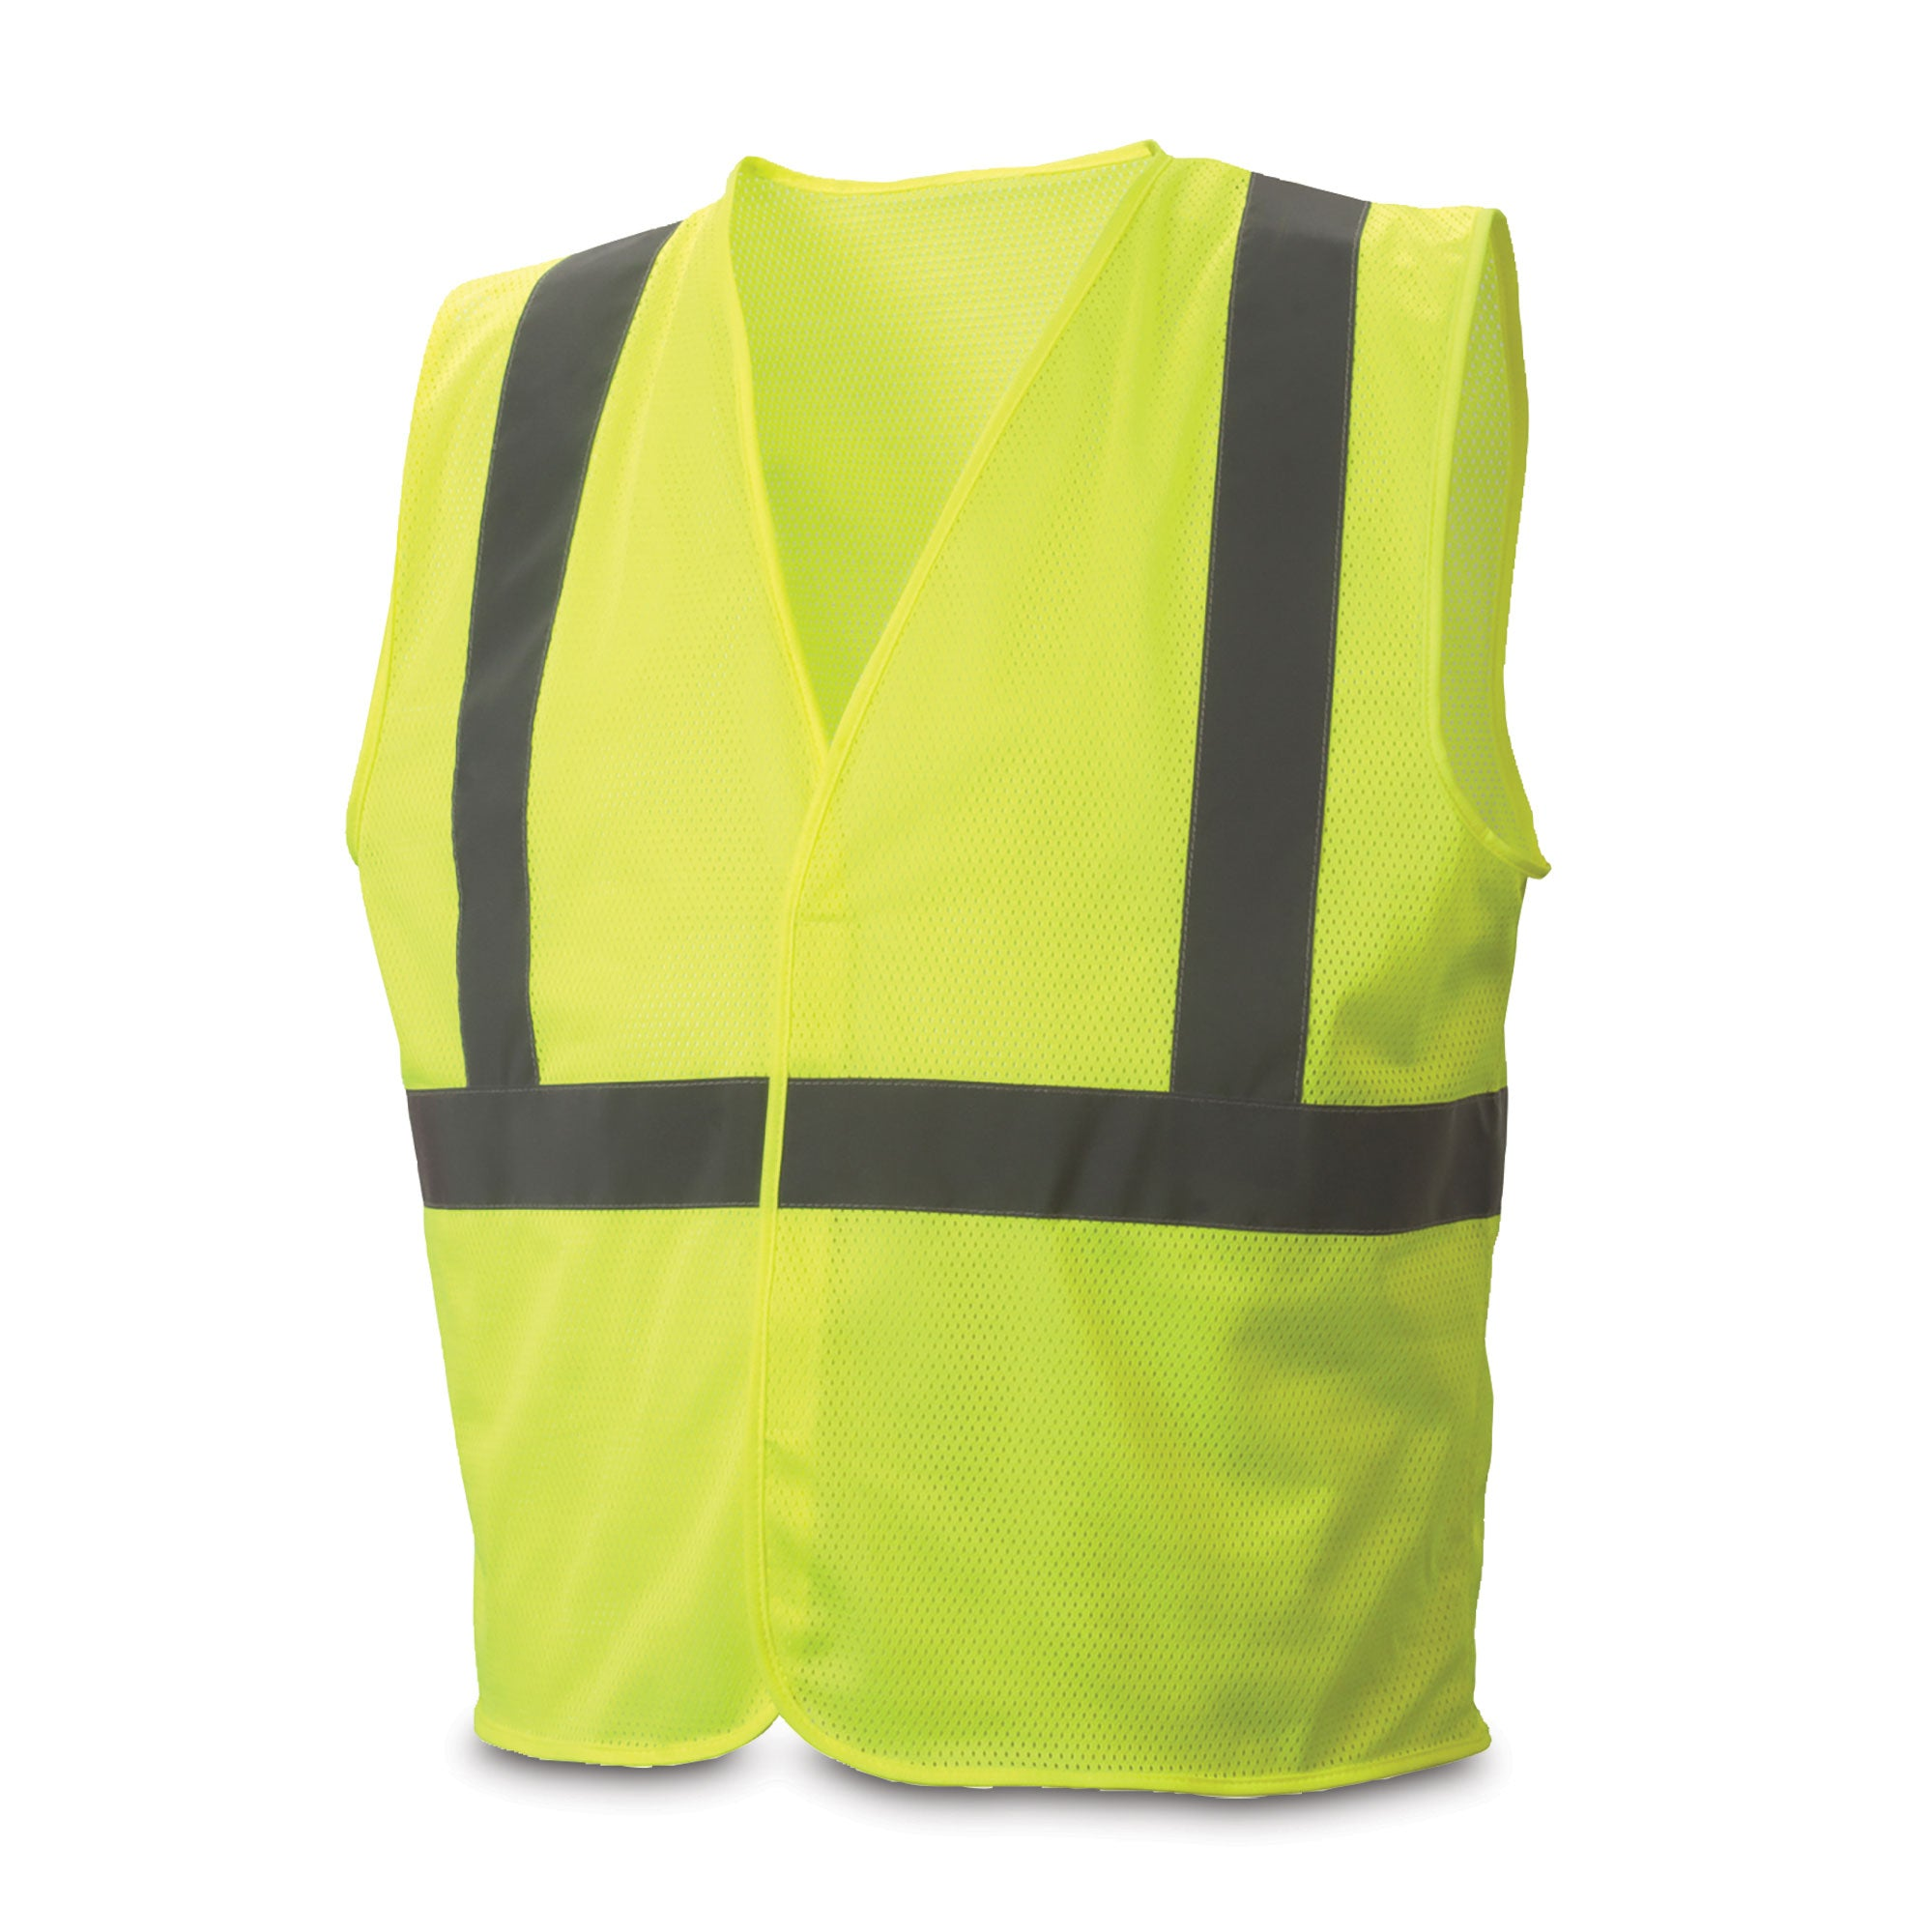 Reflective Vests with No Pockets